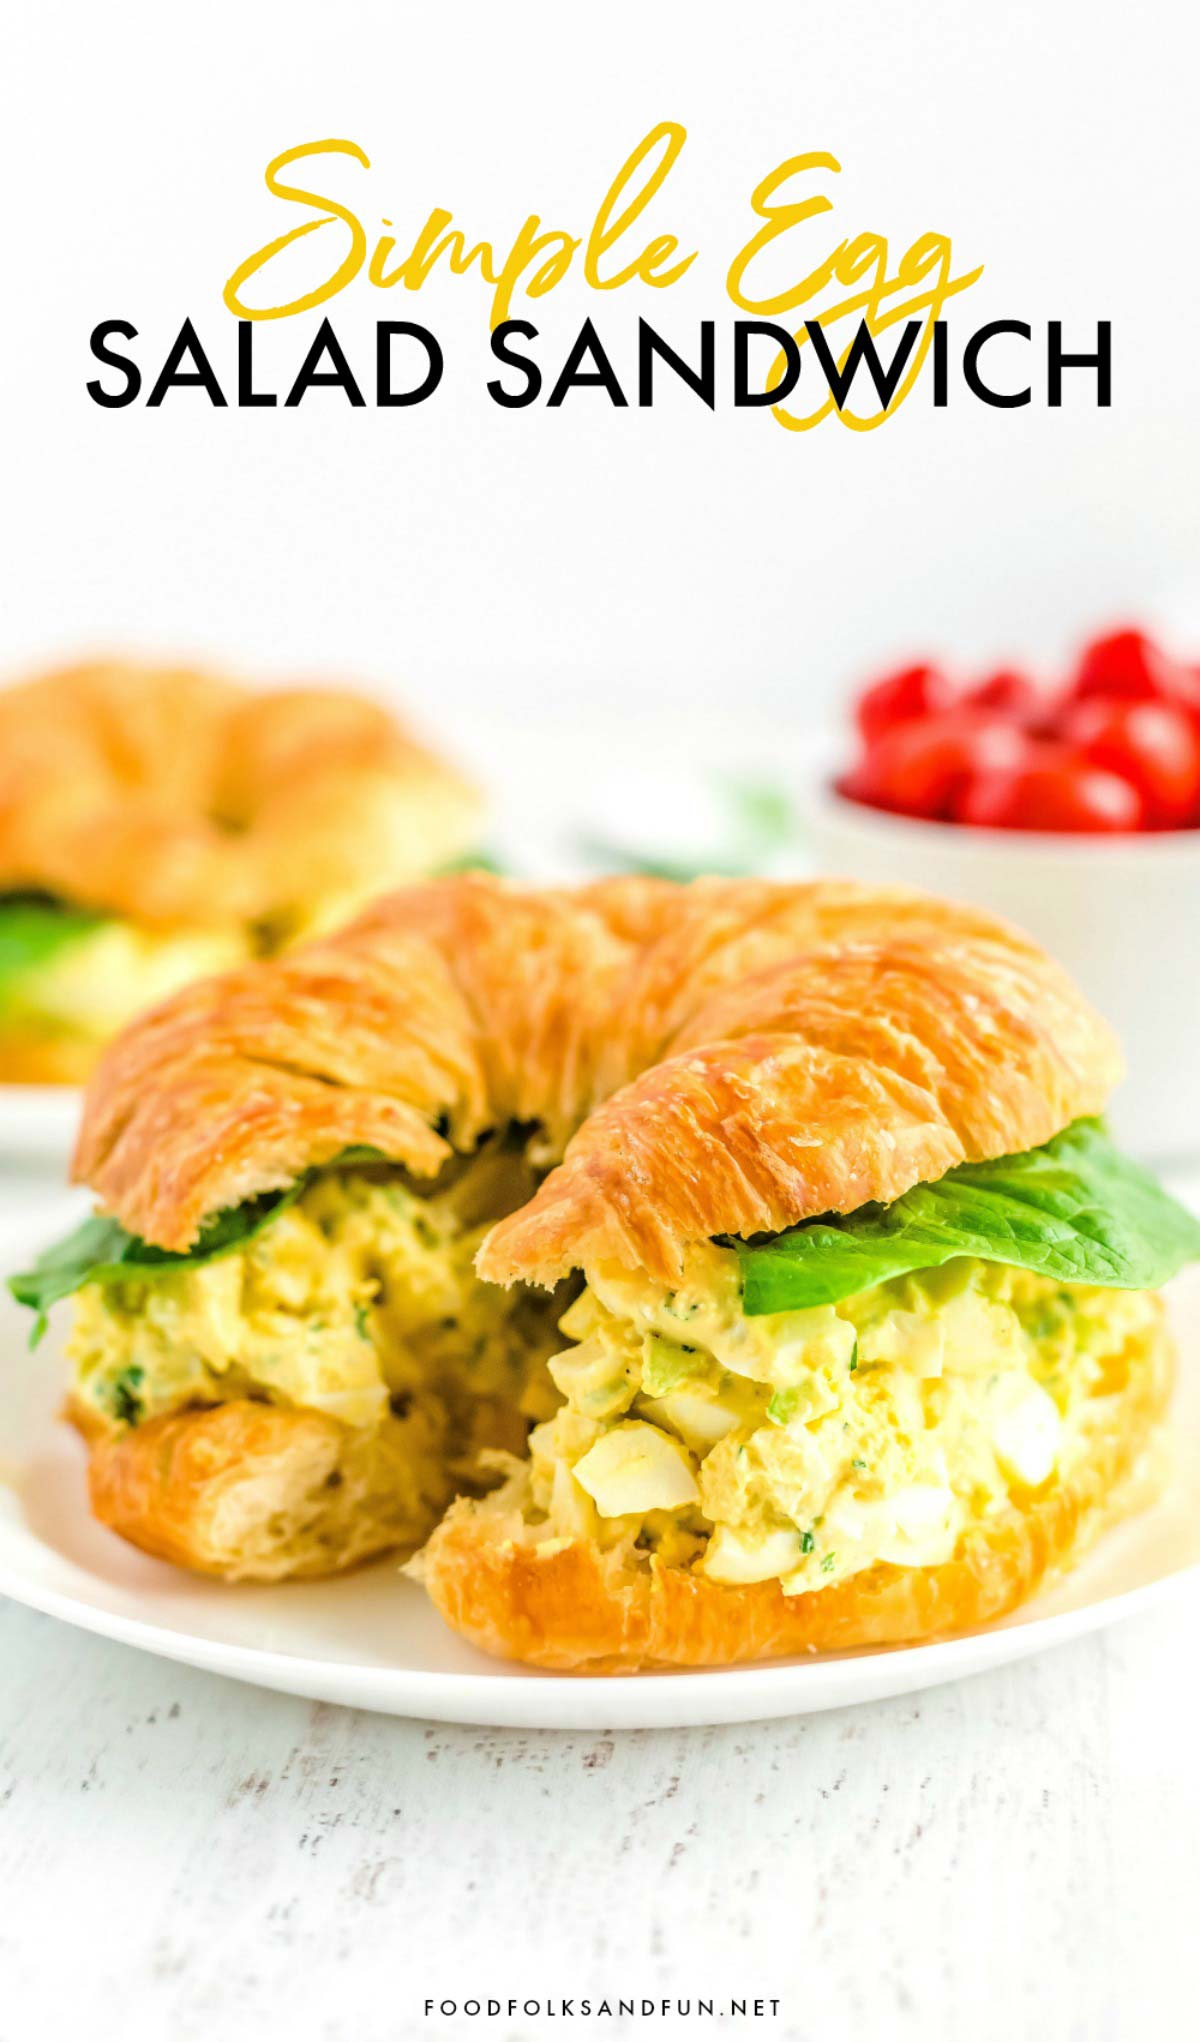 Egg Salad on a Crescent roll on a plate